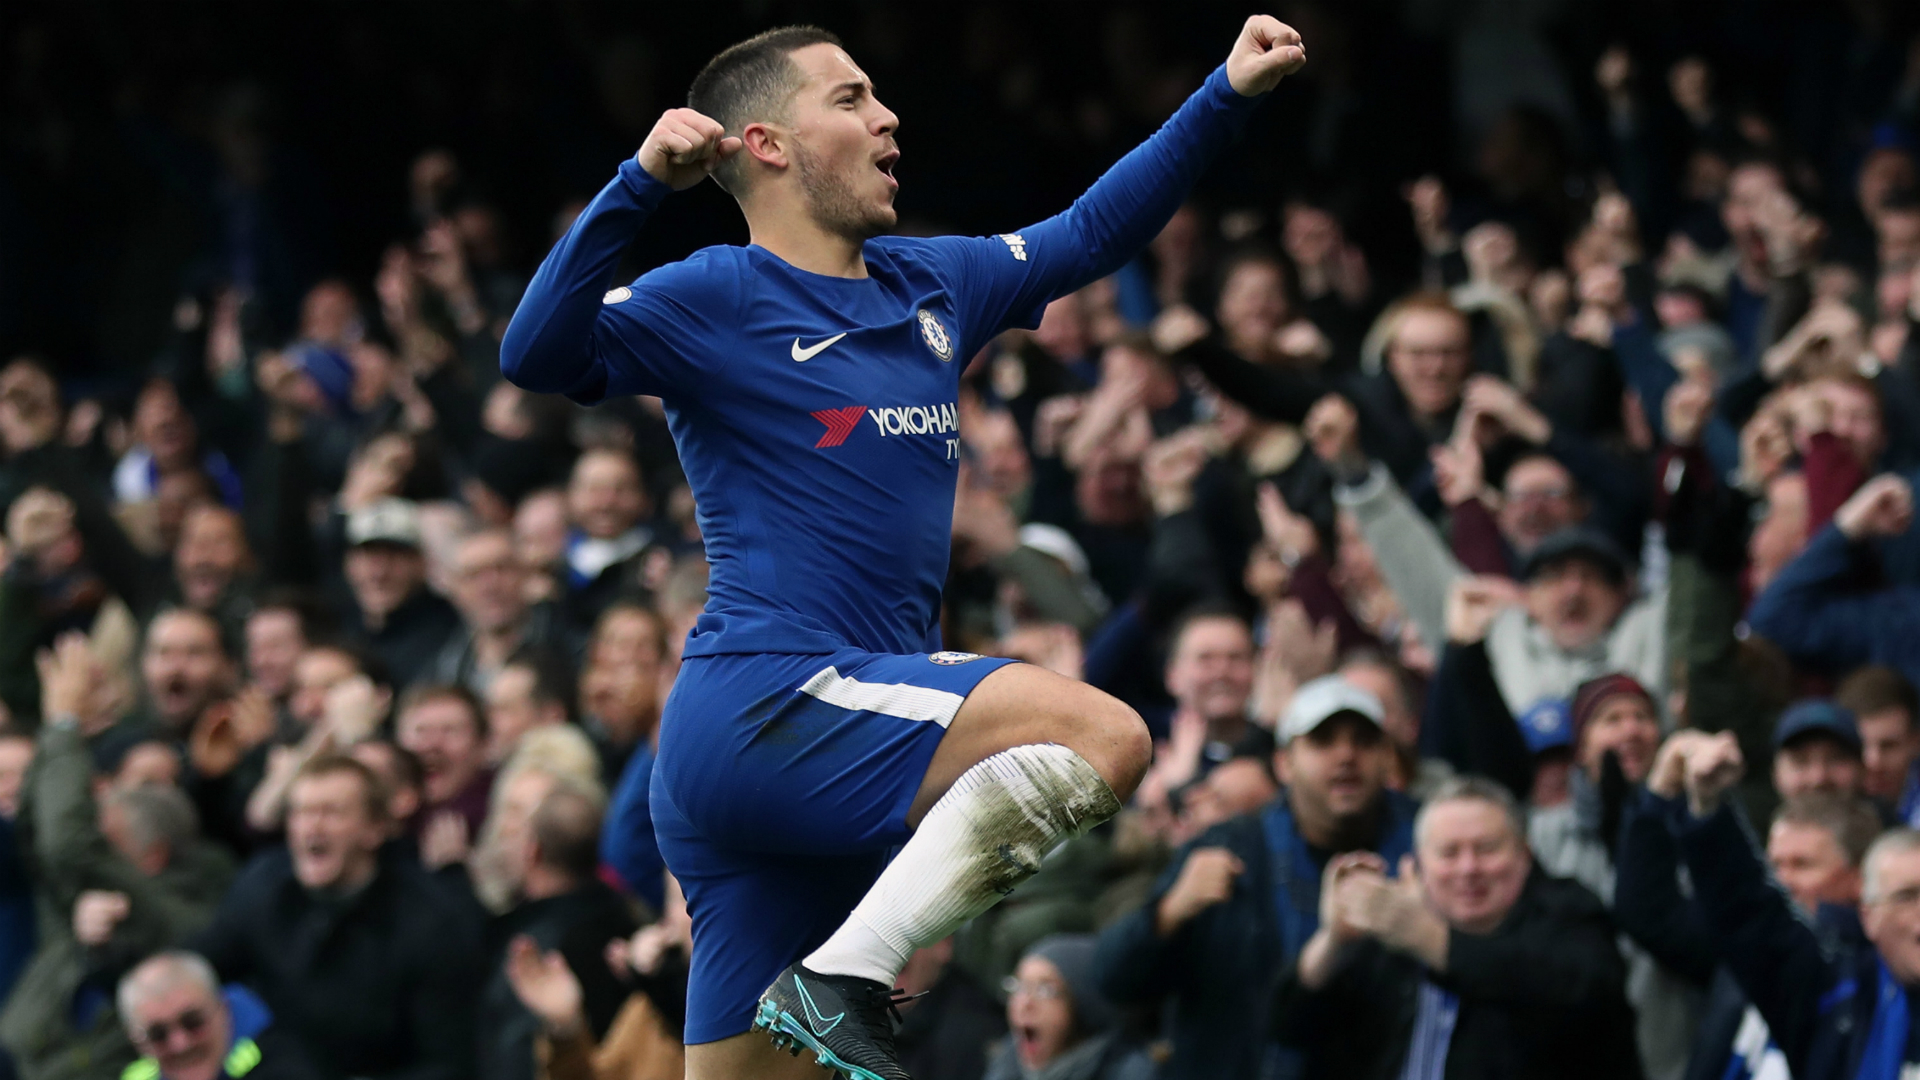 Chelsea vs Newcastle: Conte's men level on points with Manchester United